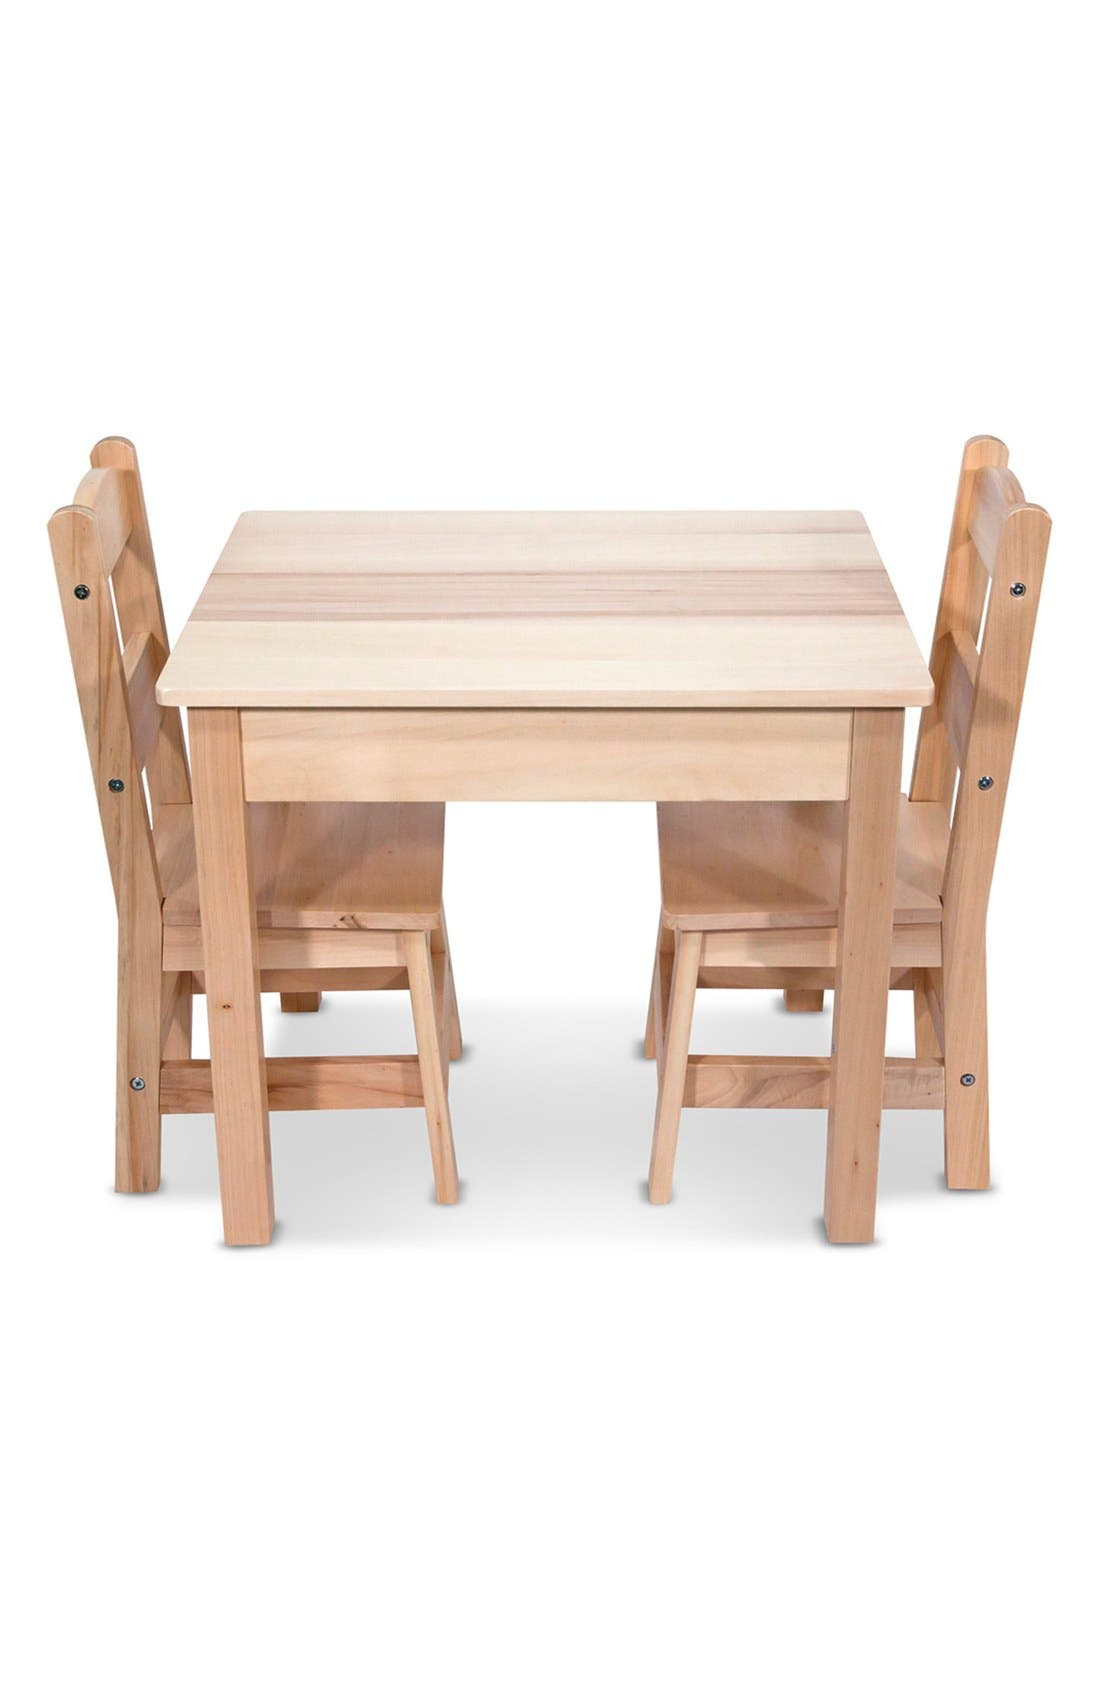 Wooden Table and Chairs Set,                             Alternate thumbnail 4, color,                             200